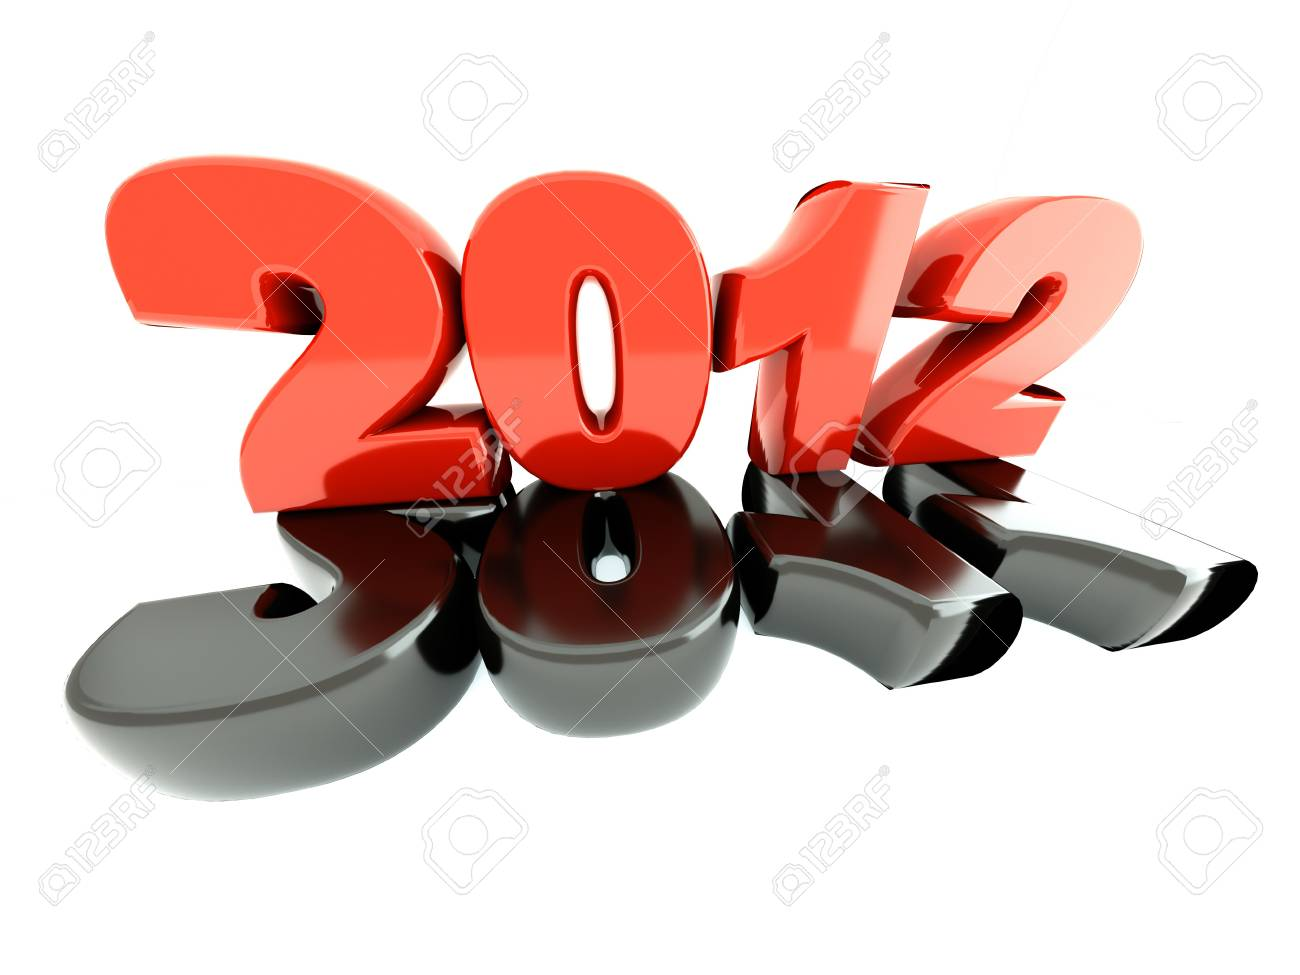 3d new year 2012 Stock Photo - 10170060